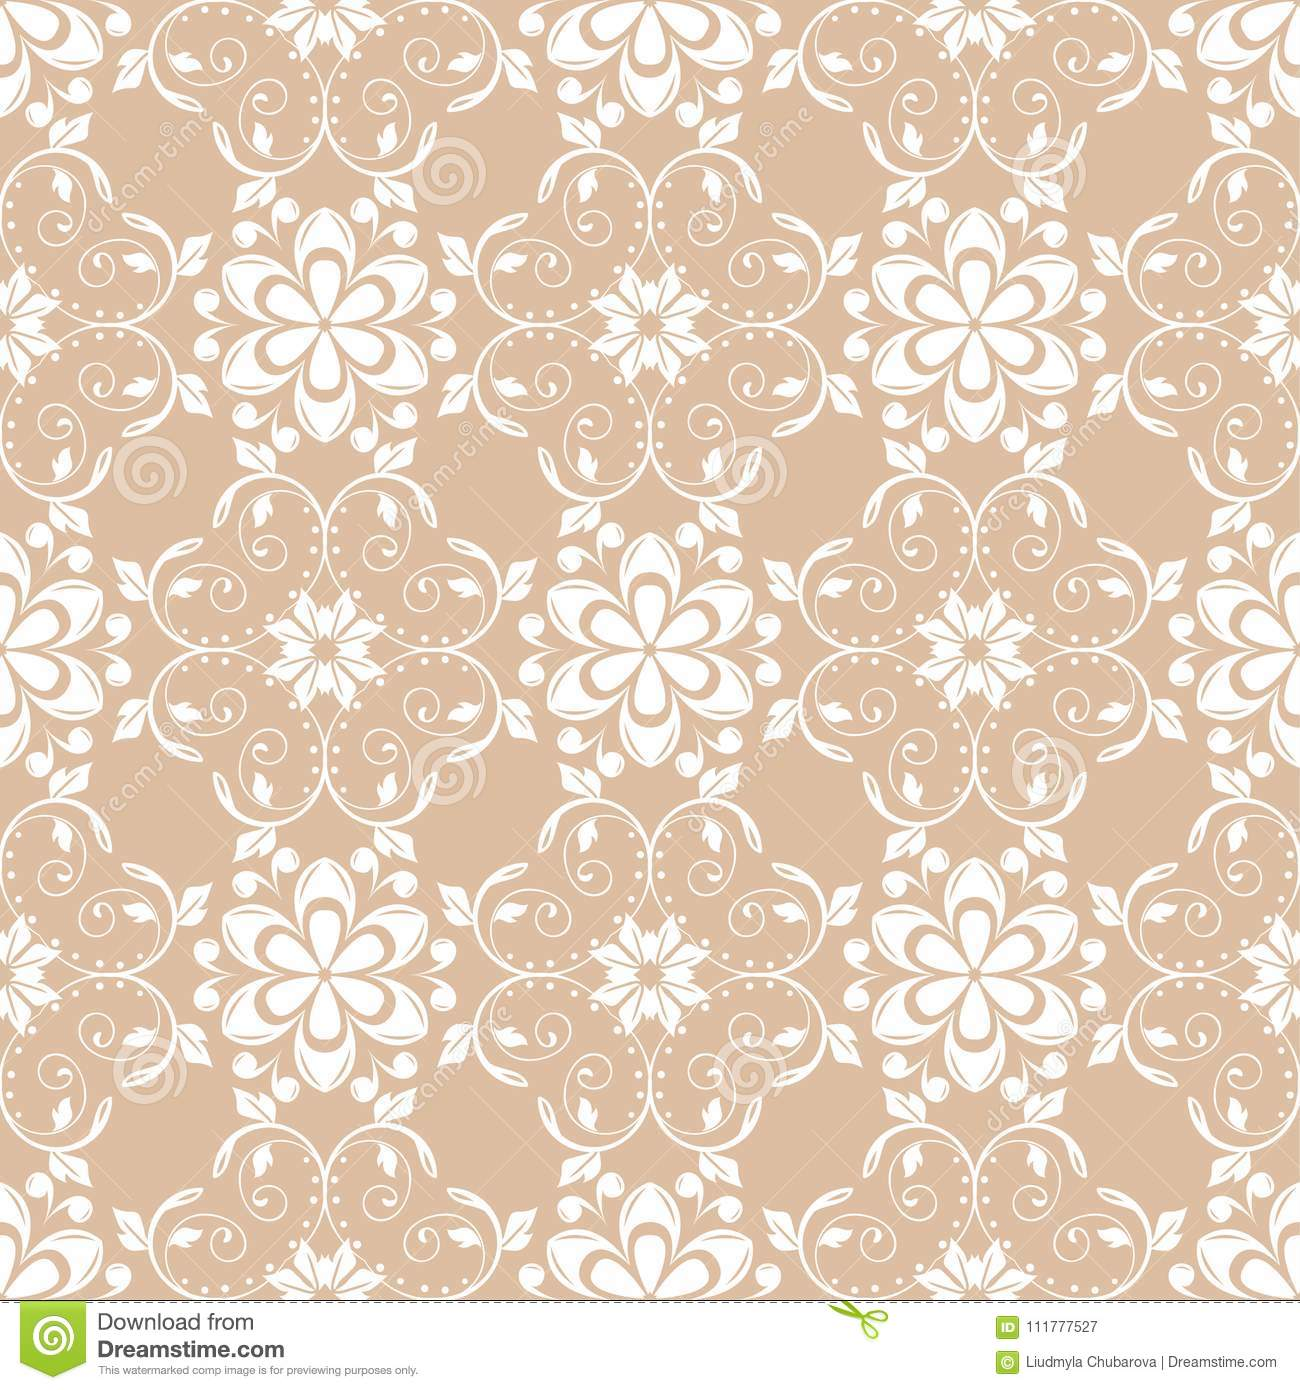 White floral pattern on beige seamless background